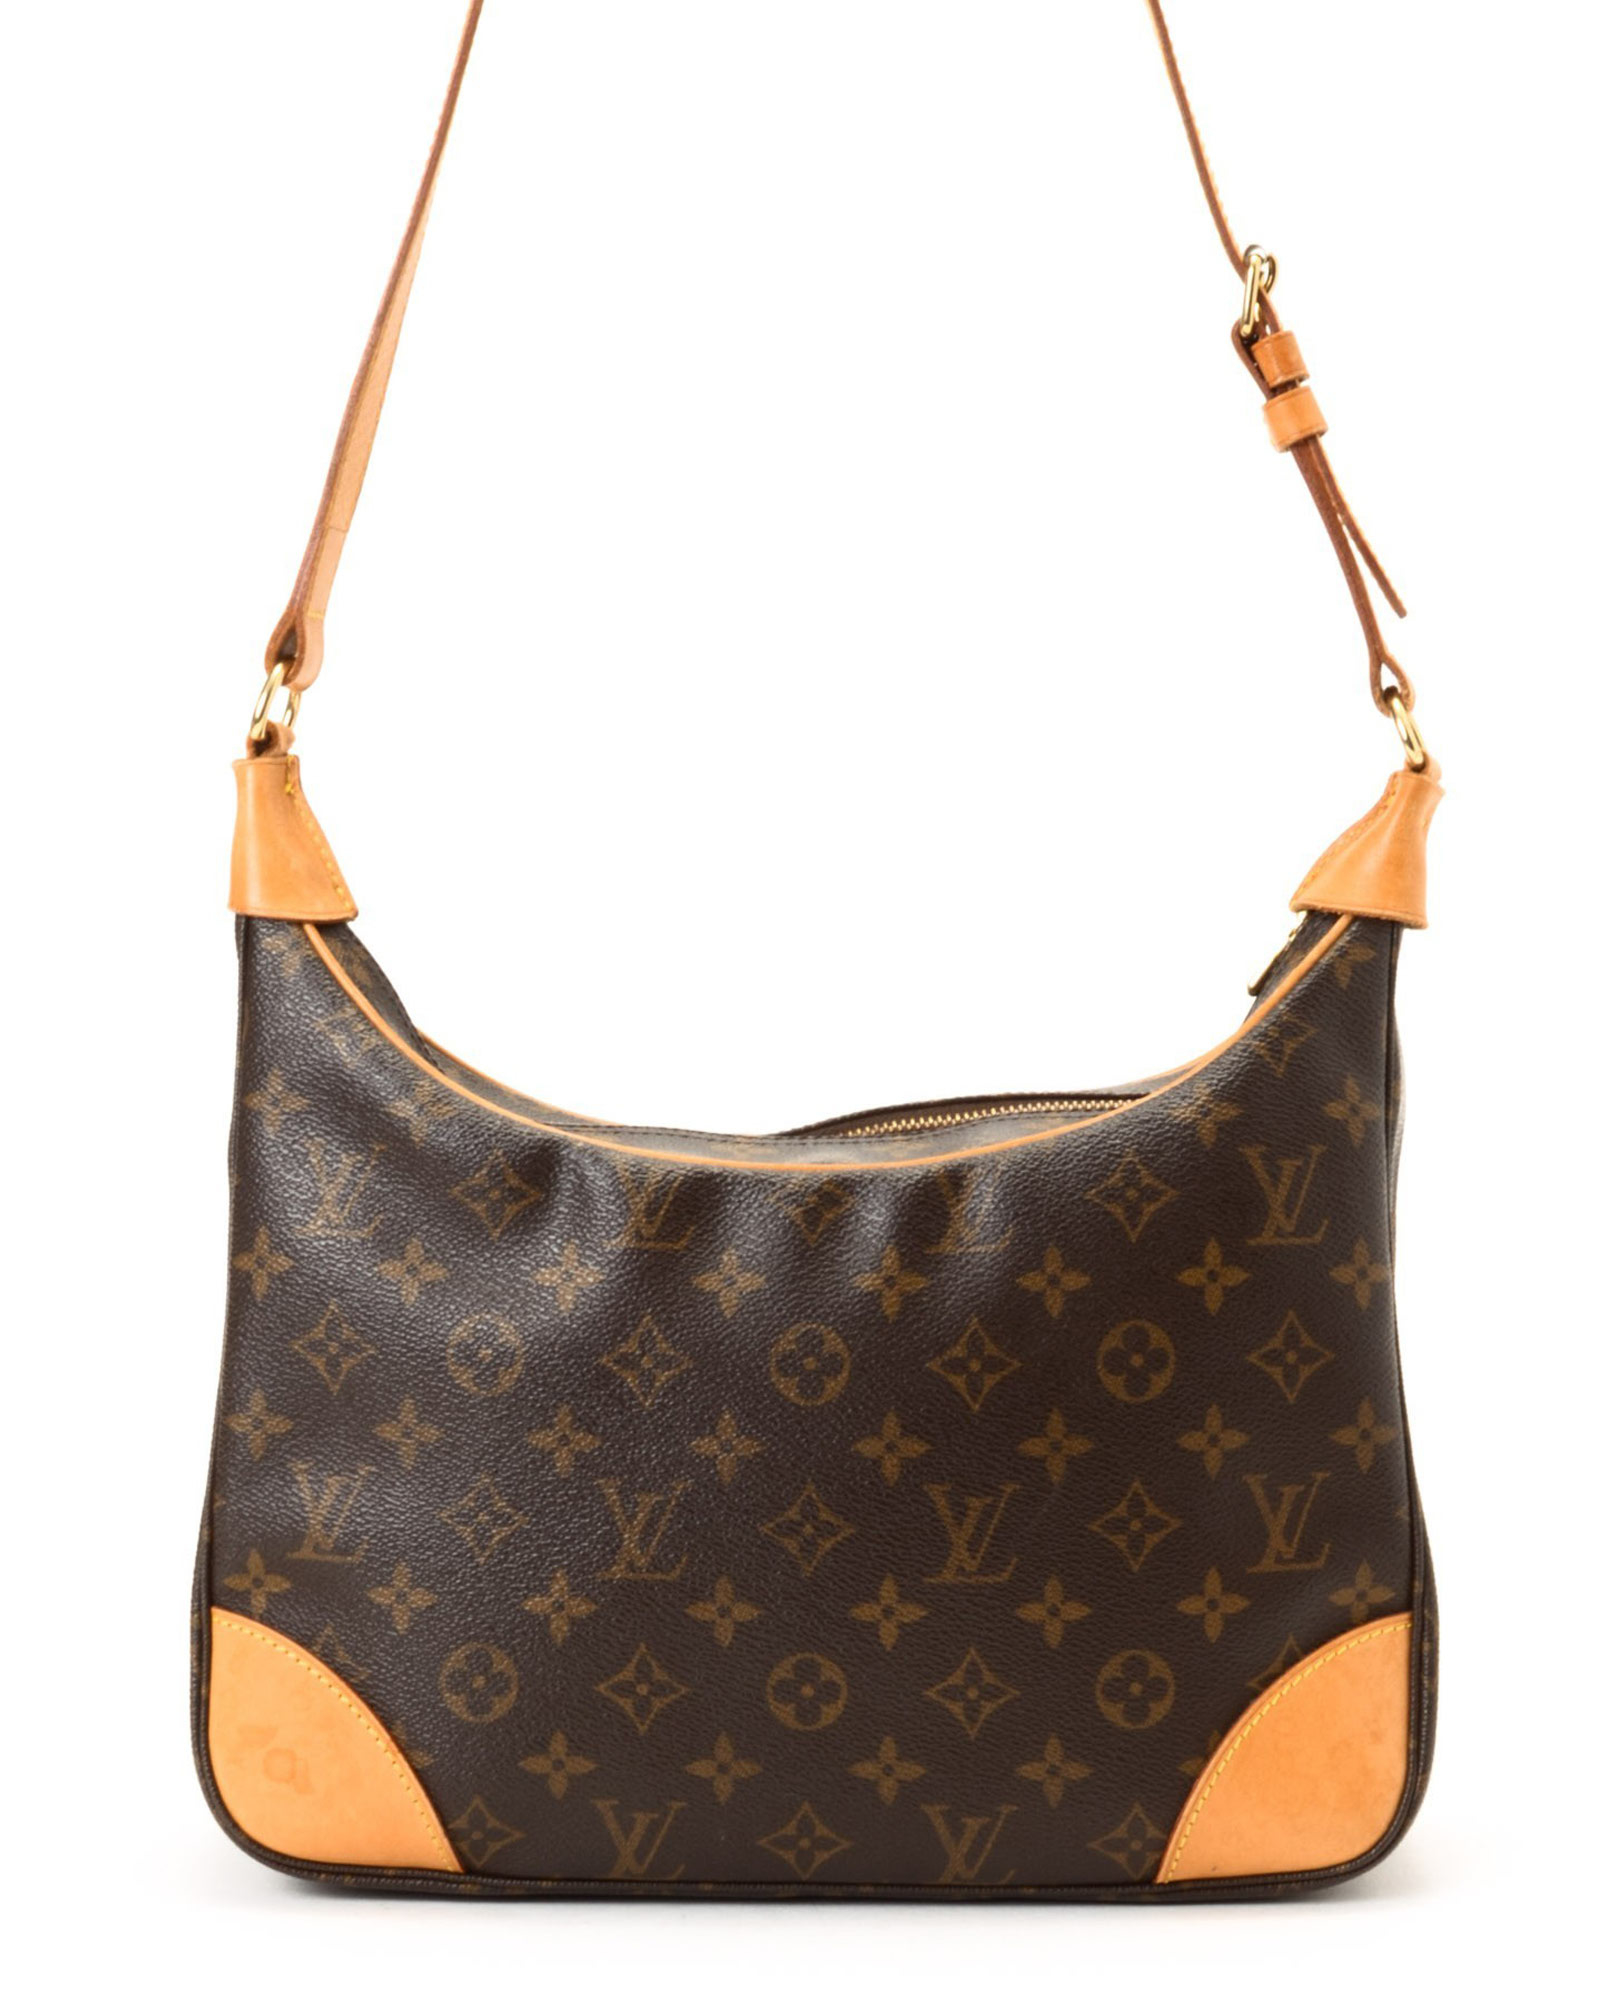 lyst louis vuitton shoulder bag vintage in brown. Black Bedroom Furniture Sets. Home Design Ideas